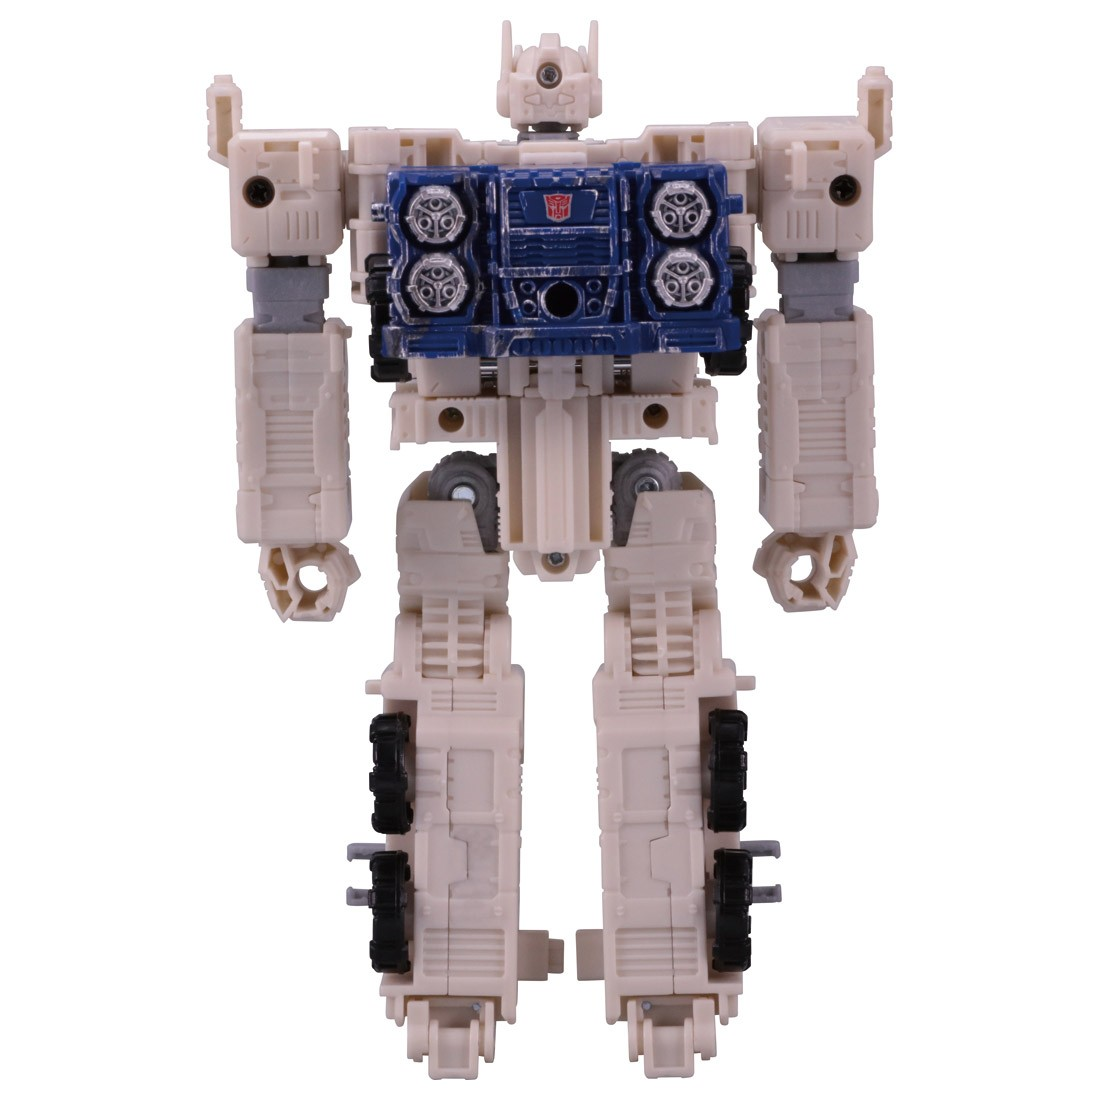 Transformers News: New High Quality Stock Photography of Transformers War For Cybertron Siege Toys, Shockwave, Minicon,